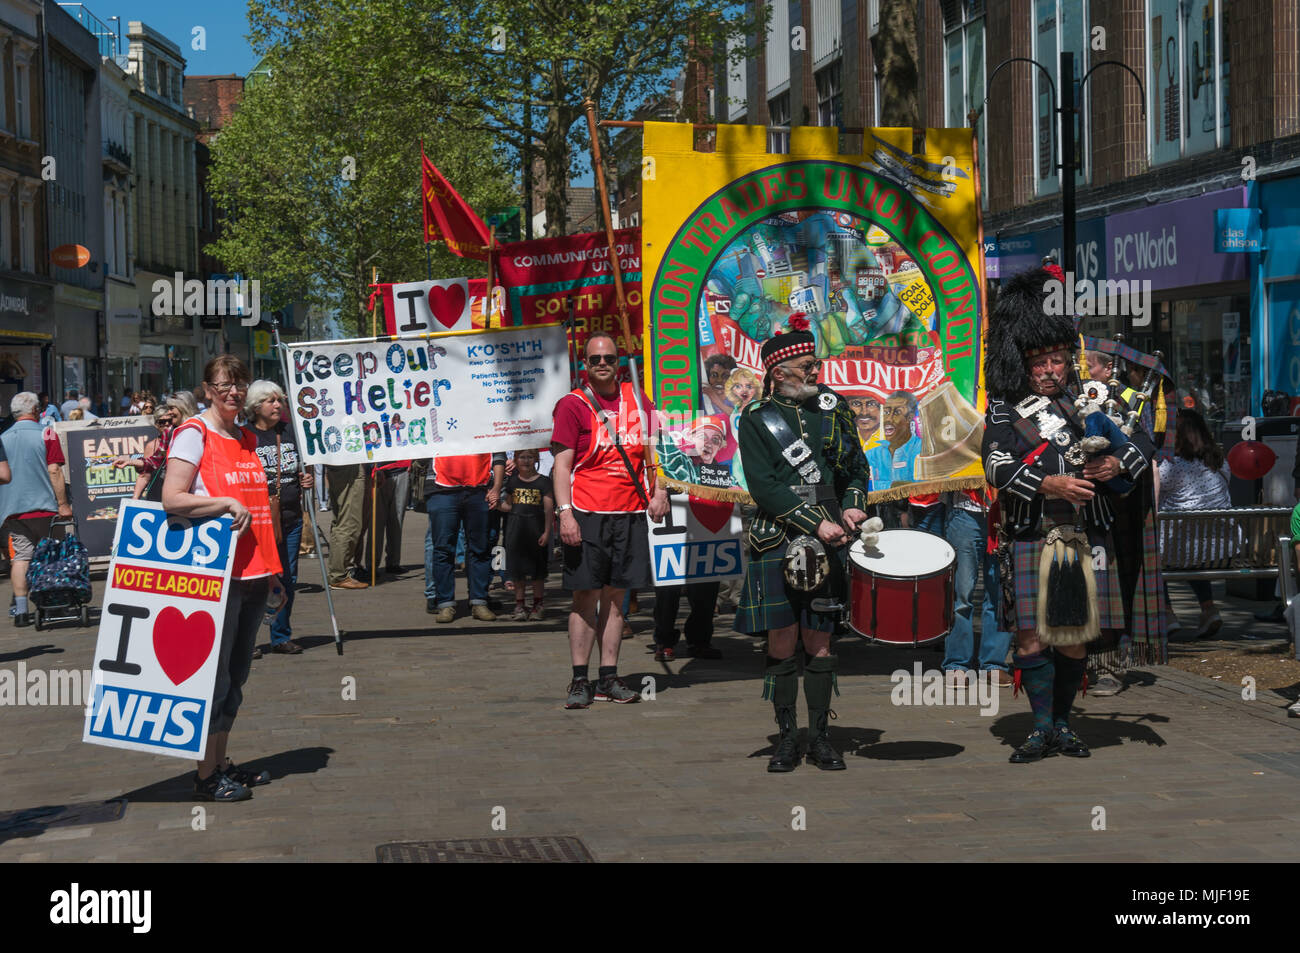 ondon, UK. 5th March 2018. A drummer and a piper lead trade unionists and other socialists on their march through Croydon town centre to a rally at Ruskin House in celebration of May Day, International Workers Day which is celebrated internationally on May 1st.  Unfortunately May Day is not a Bank Holiday in the UK. The marchers were lead through the main shopping street by a piper and drummer in full Scots dress, attracting the attention of shoppers and others on the busy street. I left the march before it reached Ruskin House where there was to be a rally with speakers including Ted Knight.  - Stock Image